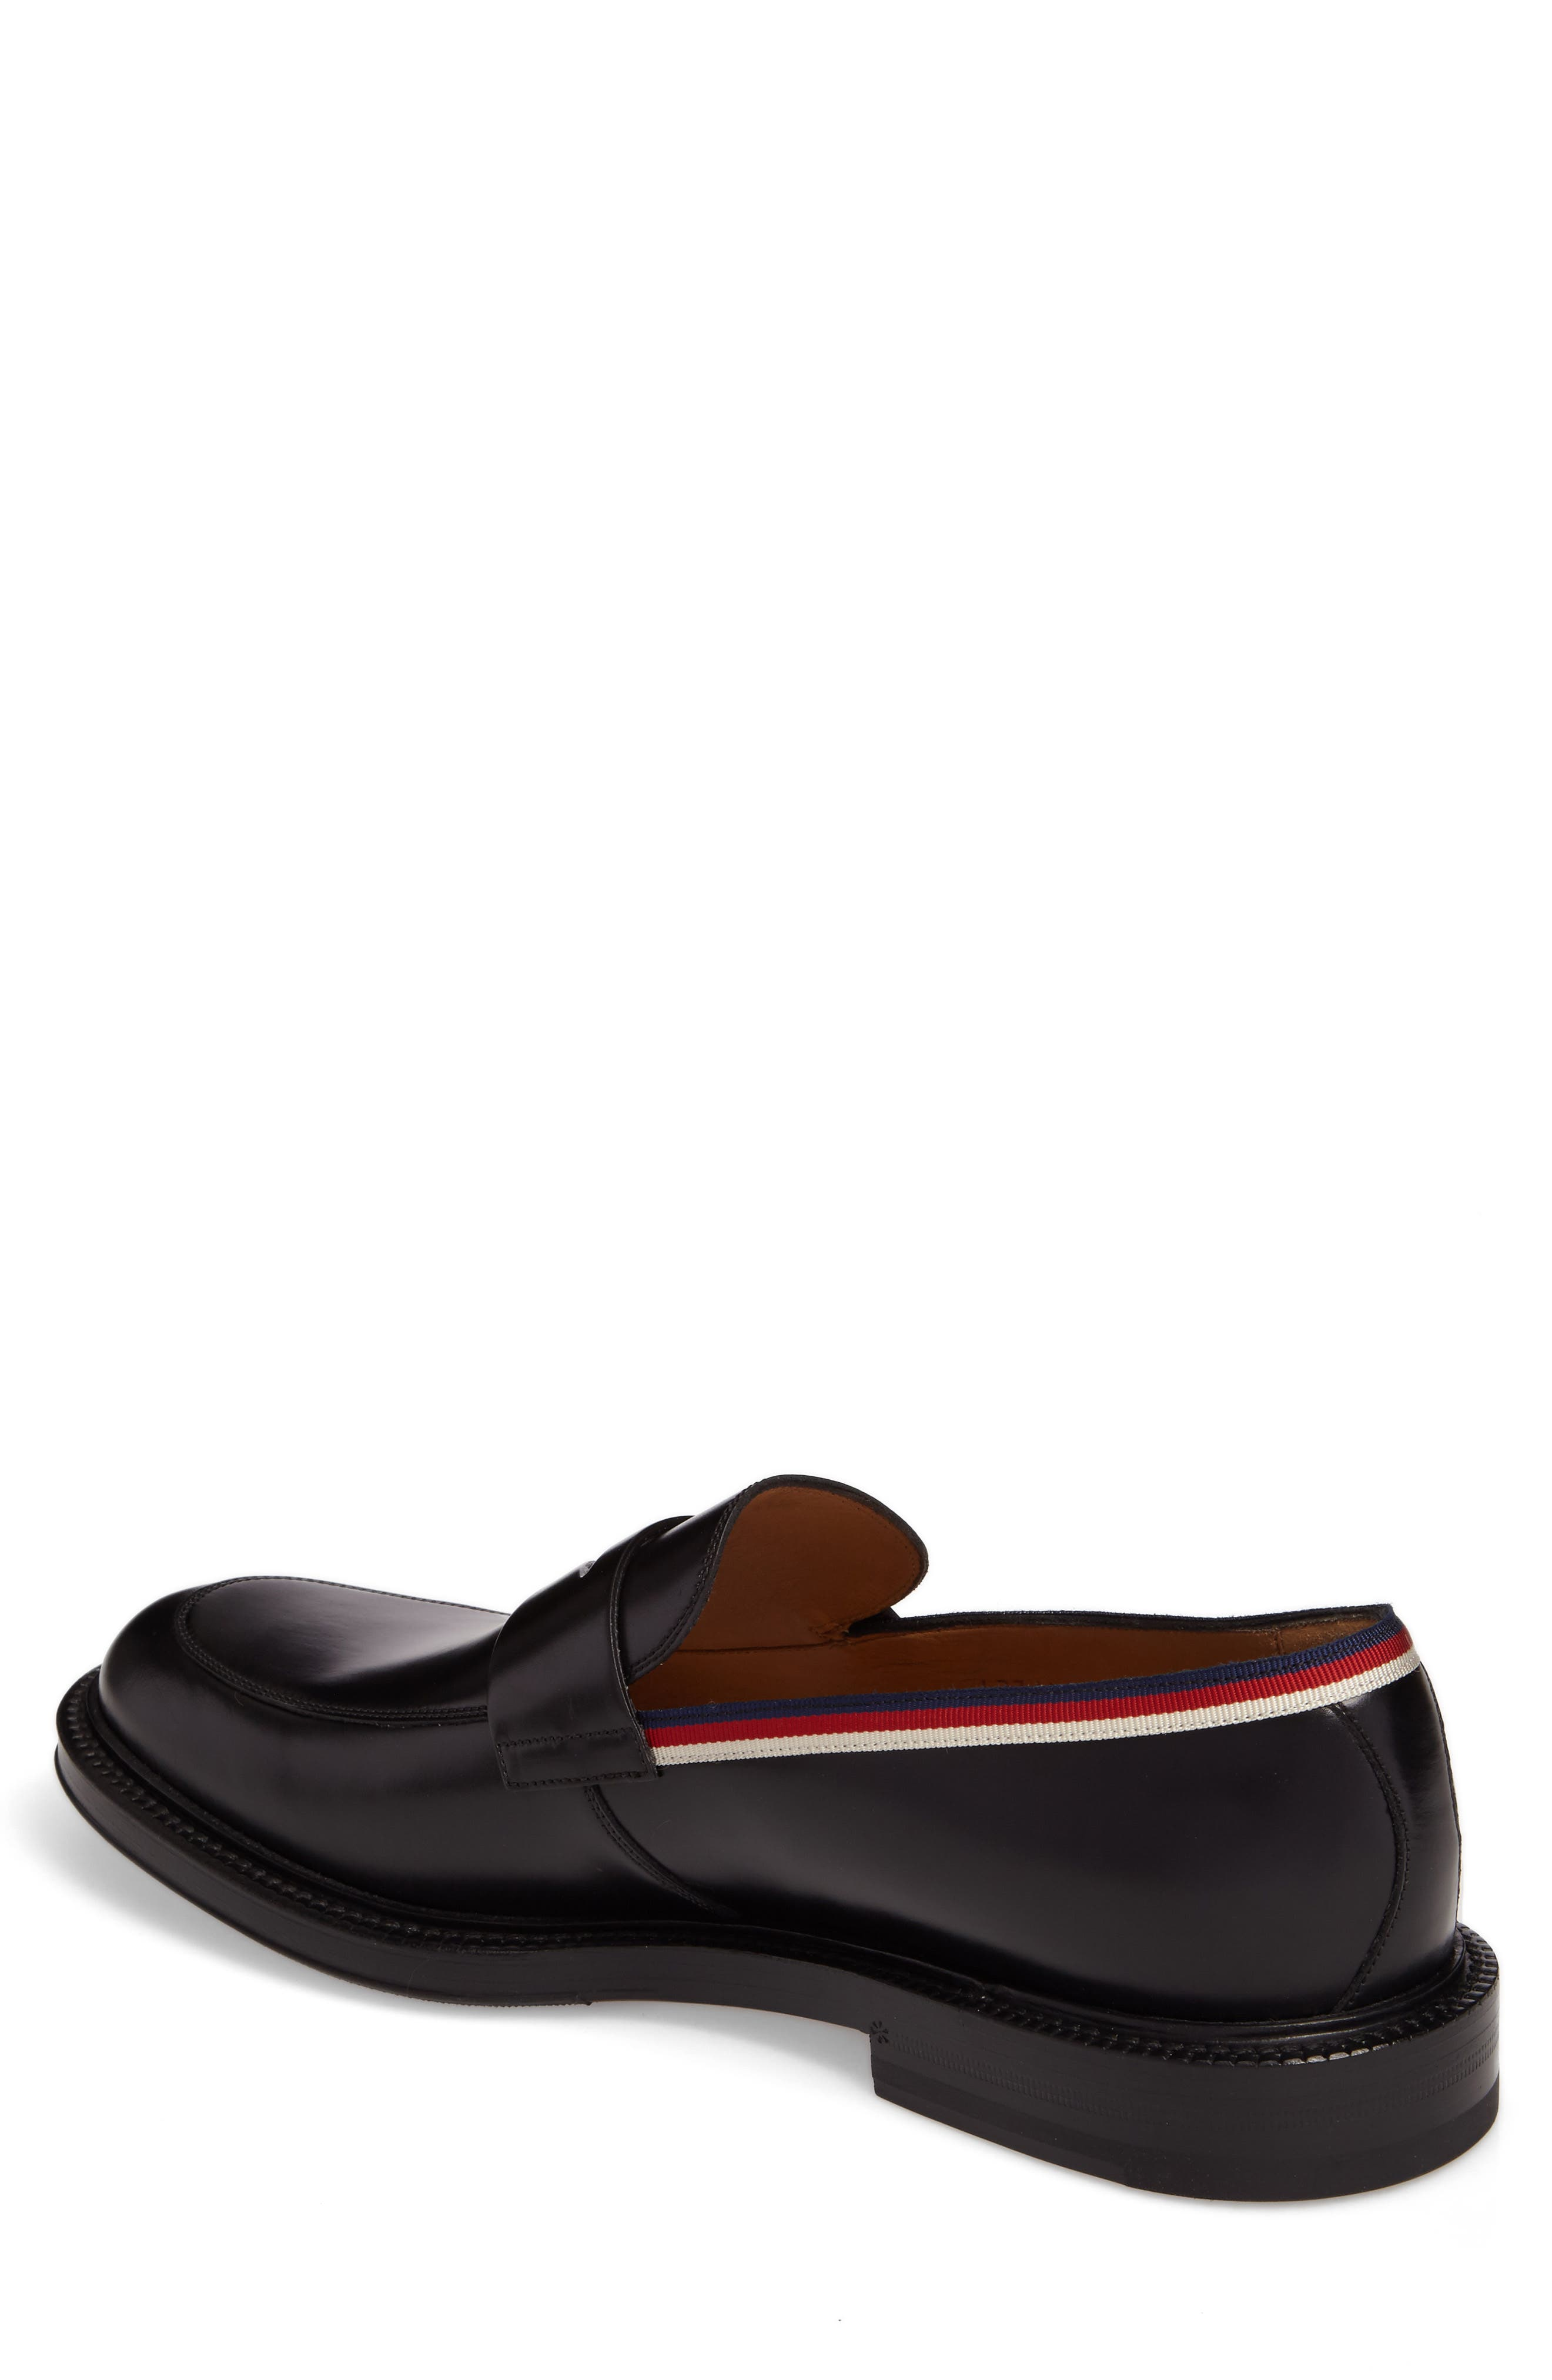 Beyond Penny Loafer,                             Alternate thumbnail 2, color,                             Black